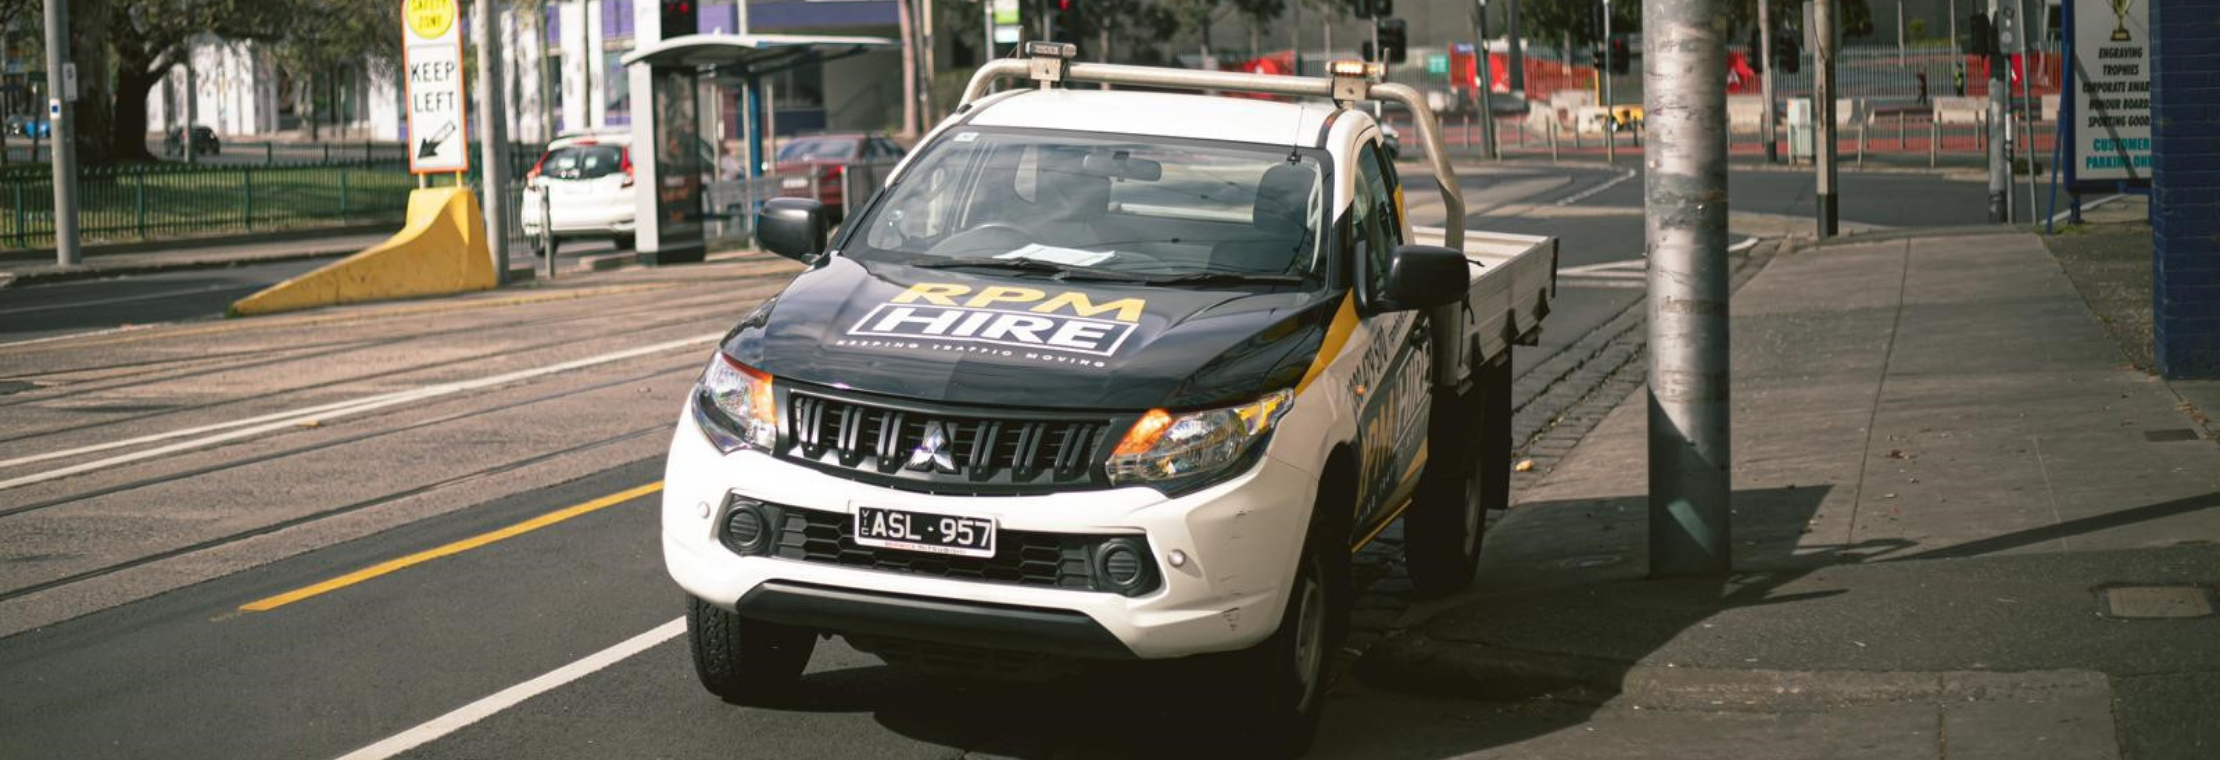 RPM Hire delivery vehicle